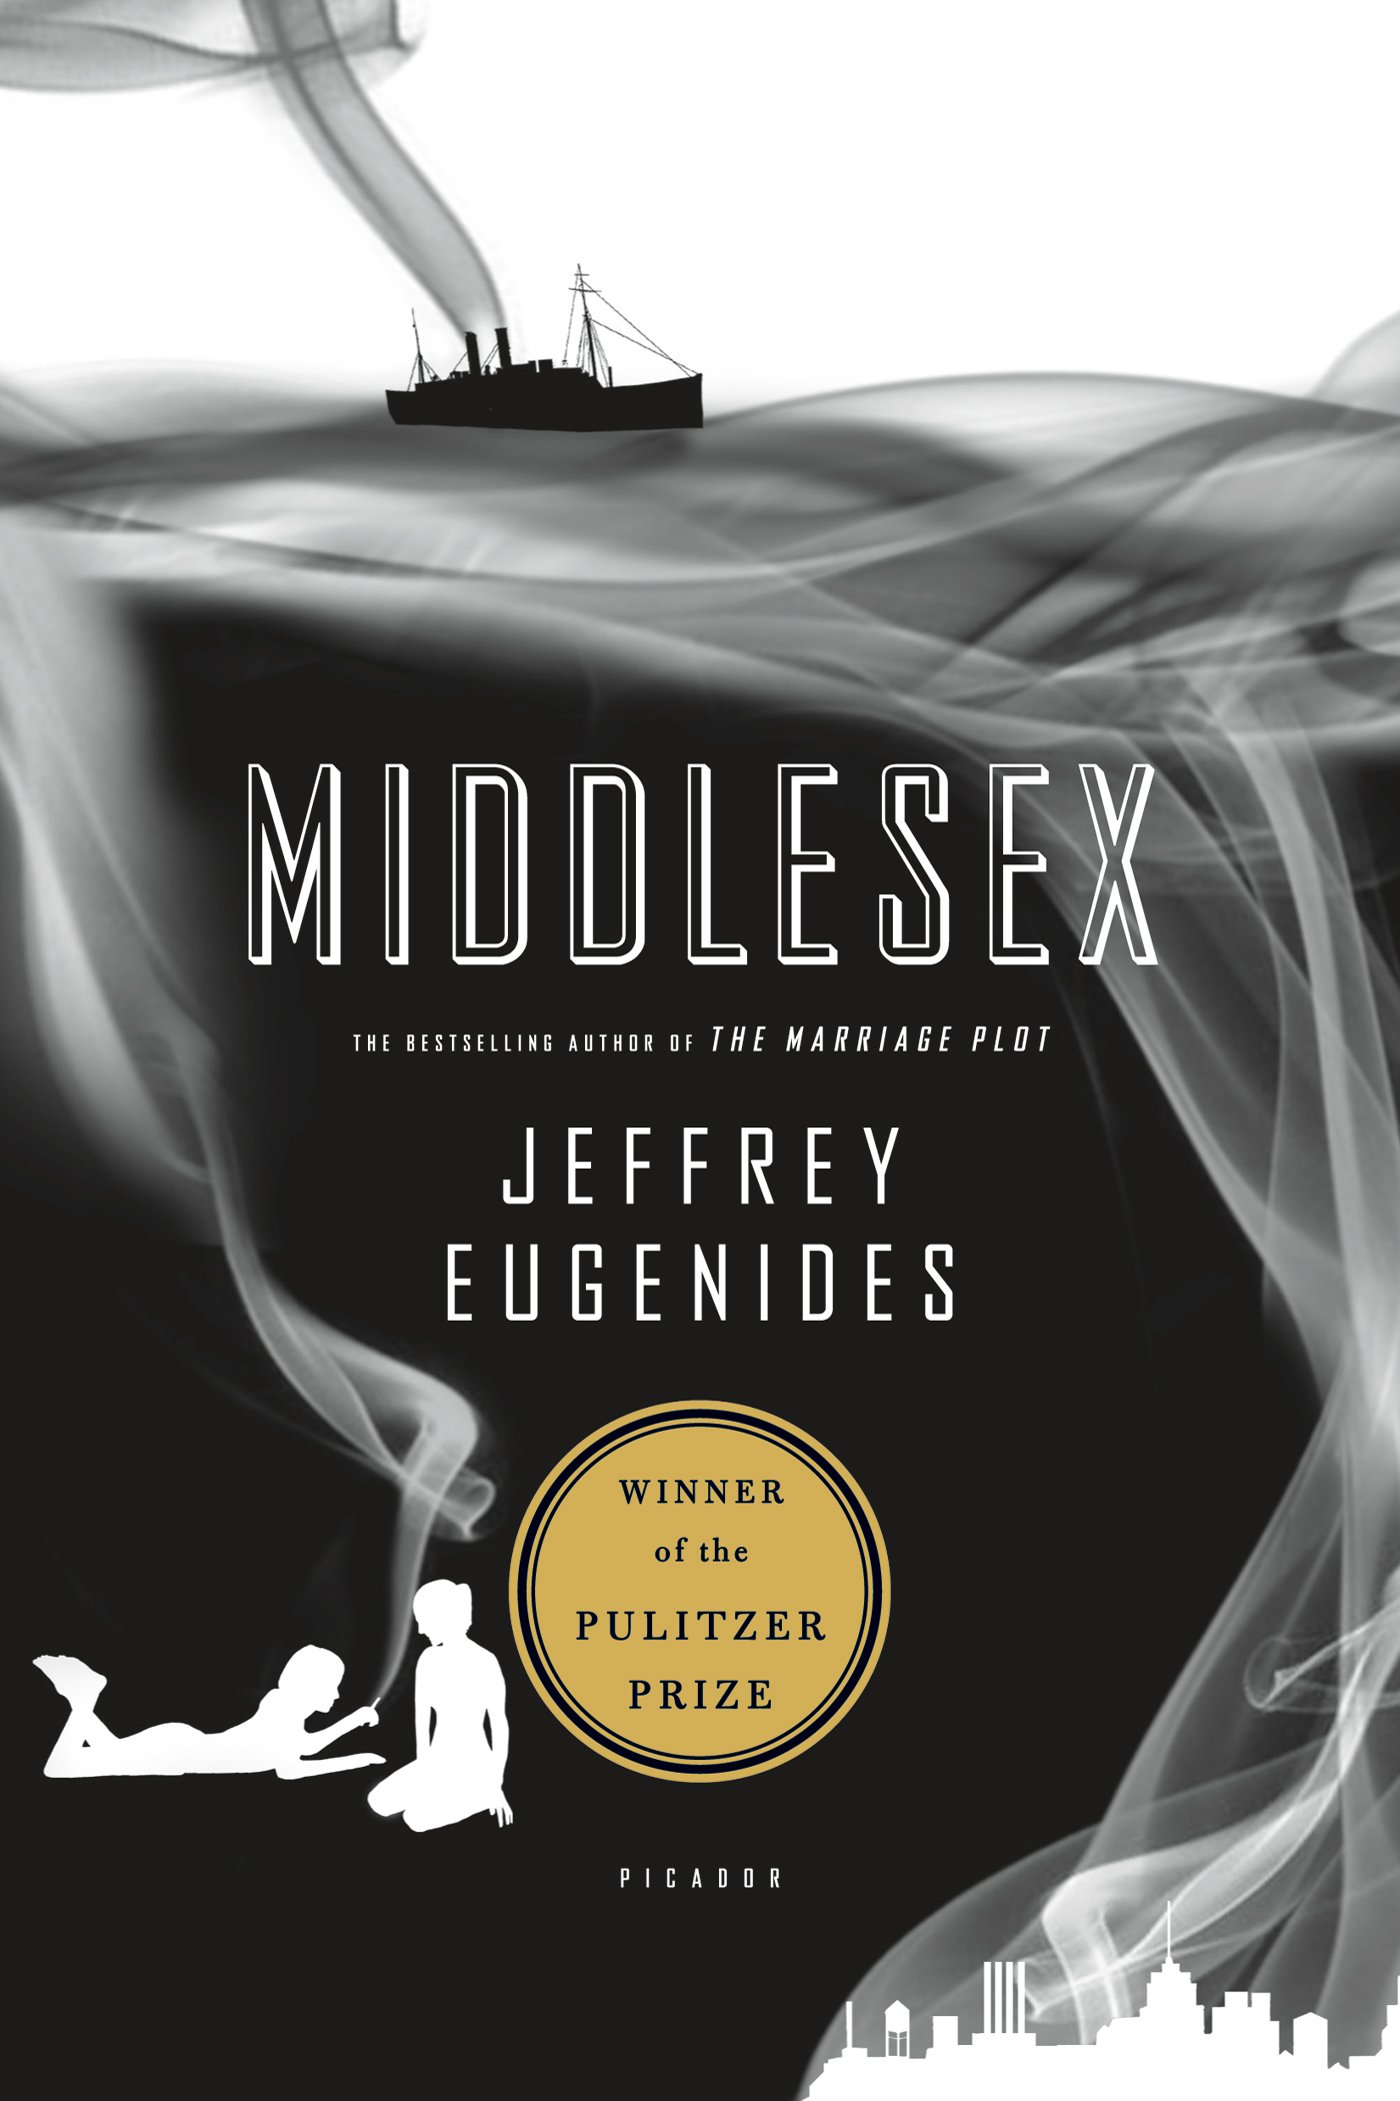 Image result for middlesex book